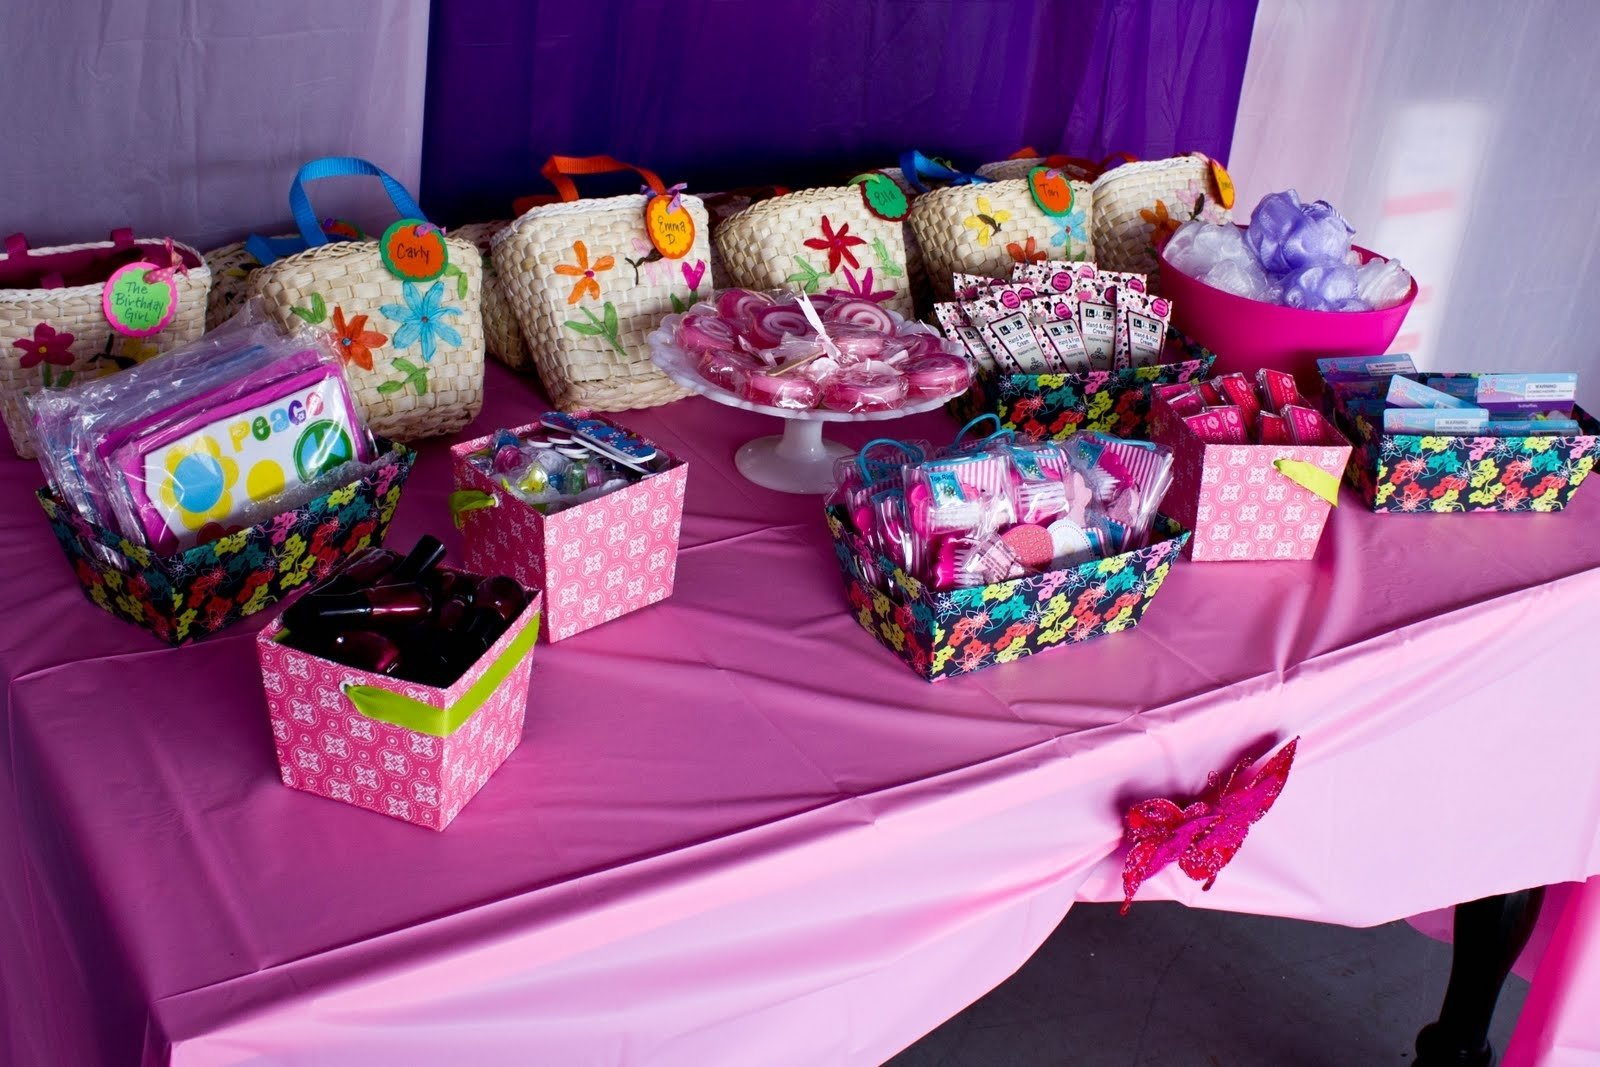 10 Stunning Ideas For Girls Birthday Party girls spa birthday party ideas pool design ideas 4 2020